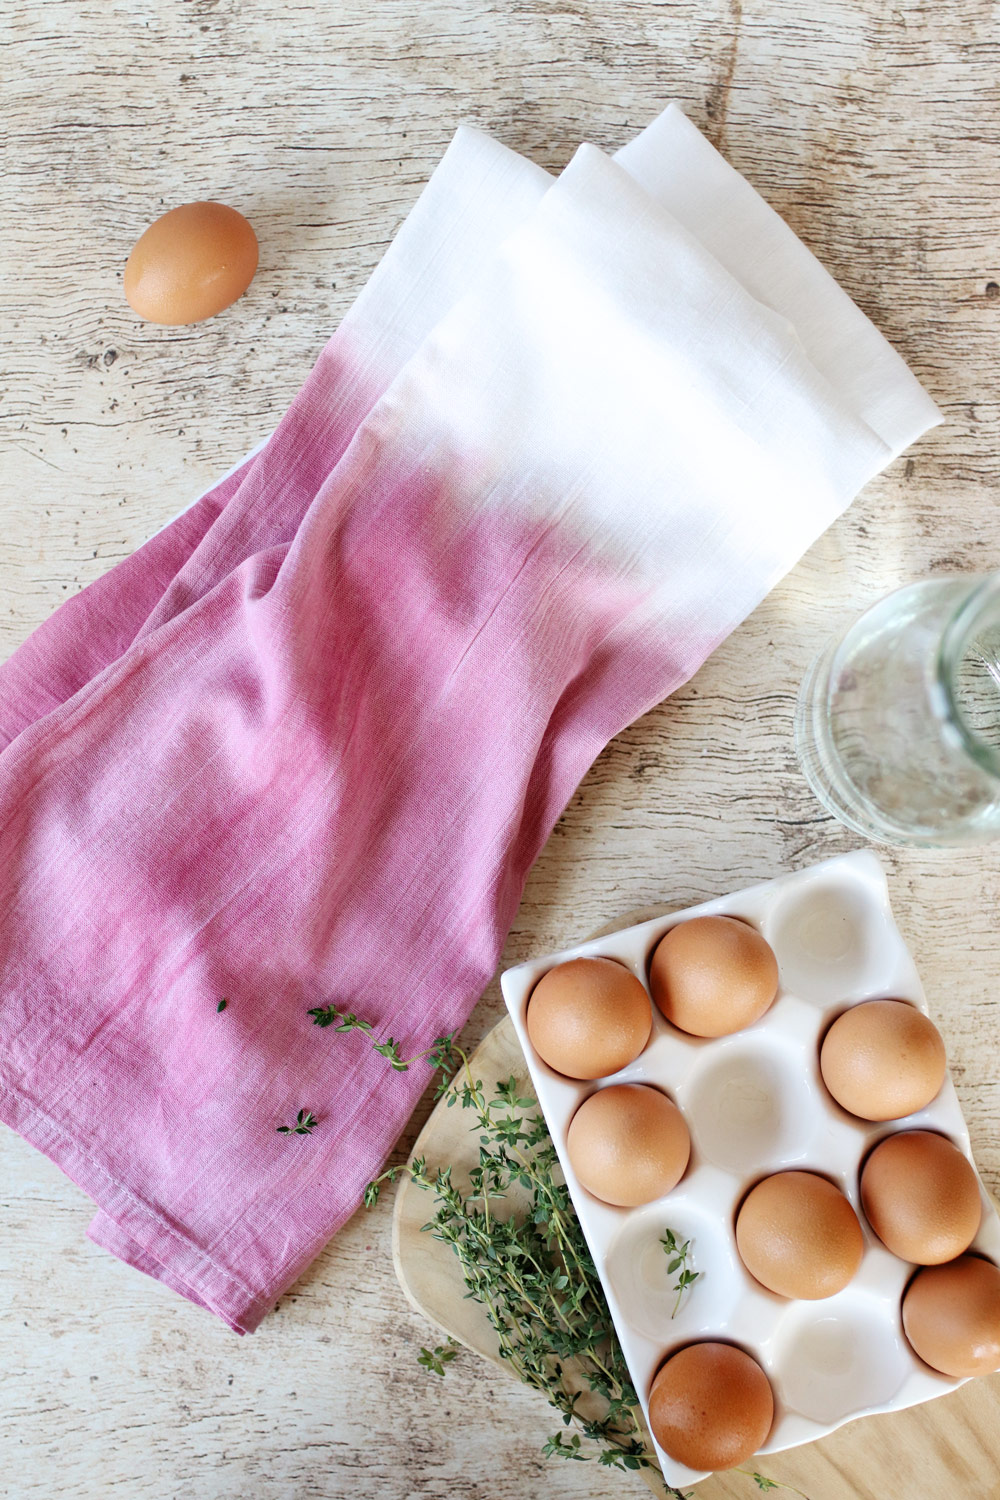 How To Make Natural Dye with Beets